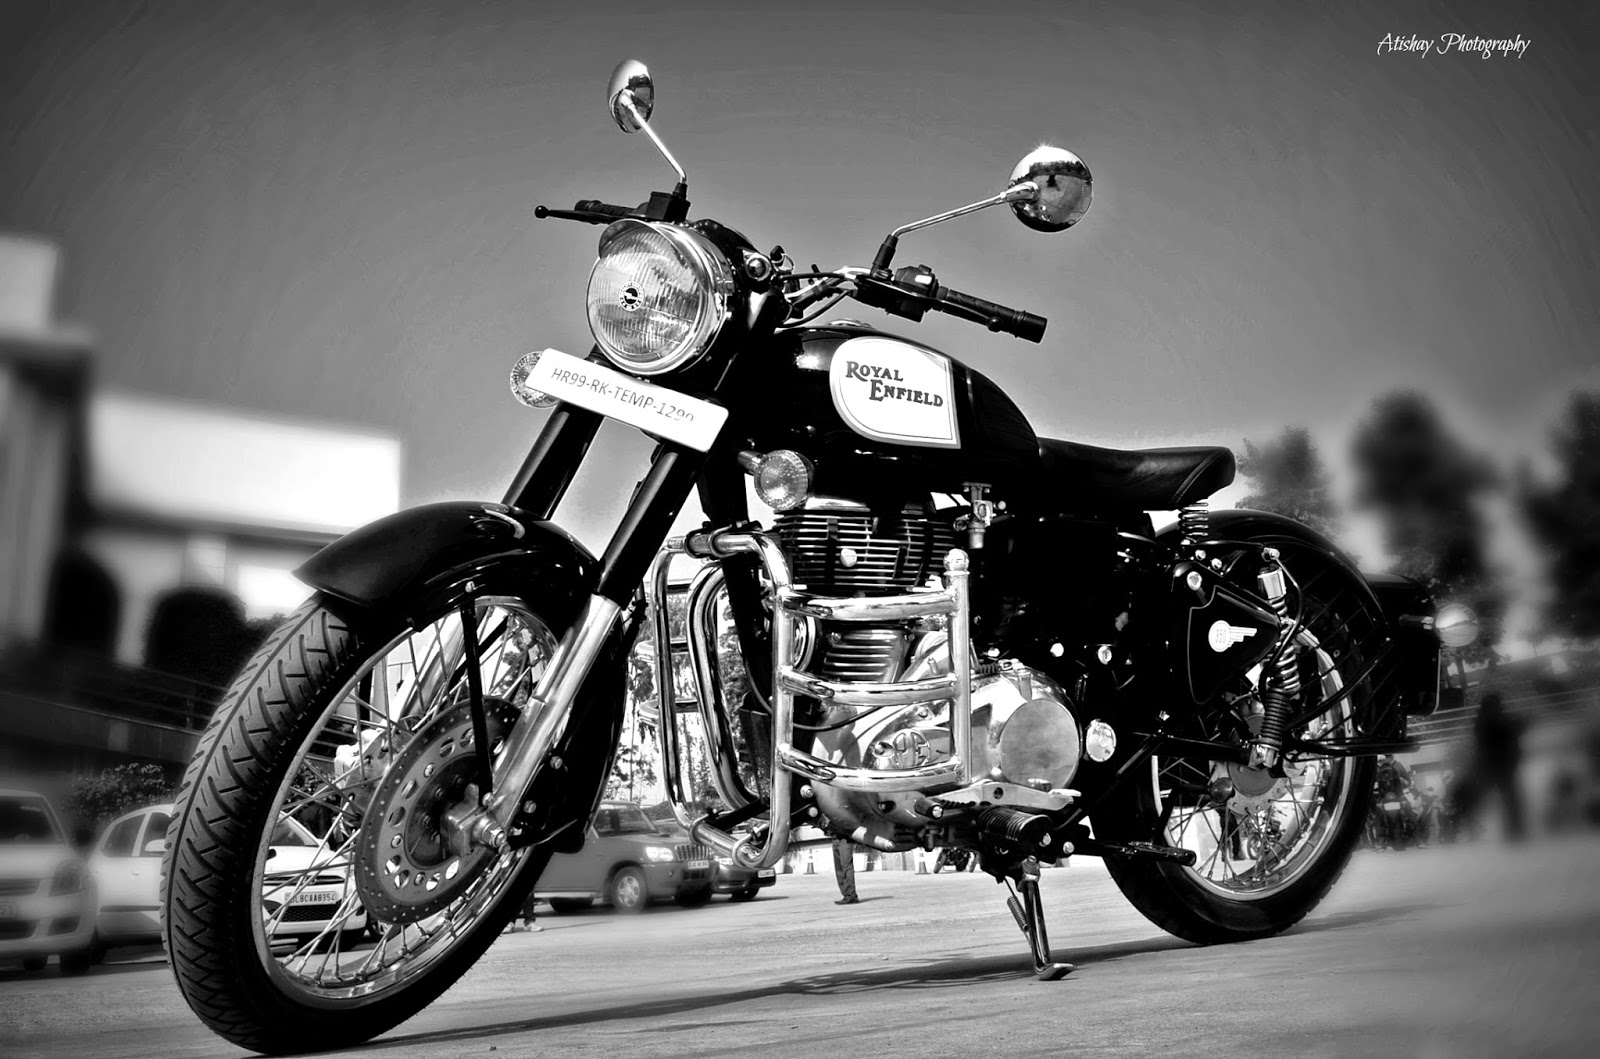 Hd wallpaper royal enfield -  Royal Enfield Classic 350 Black Wallpaper